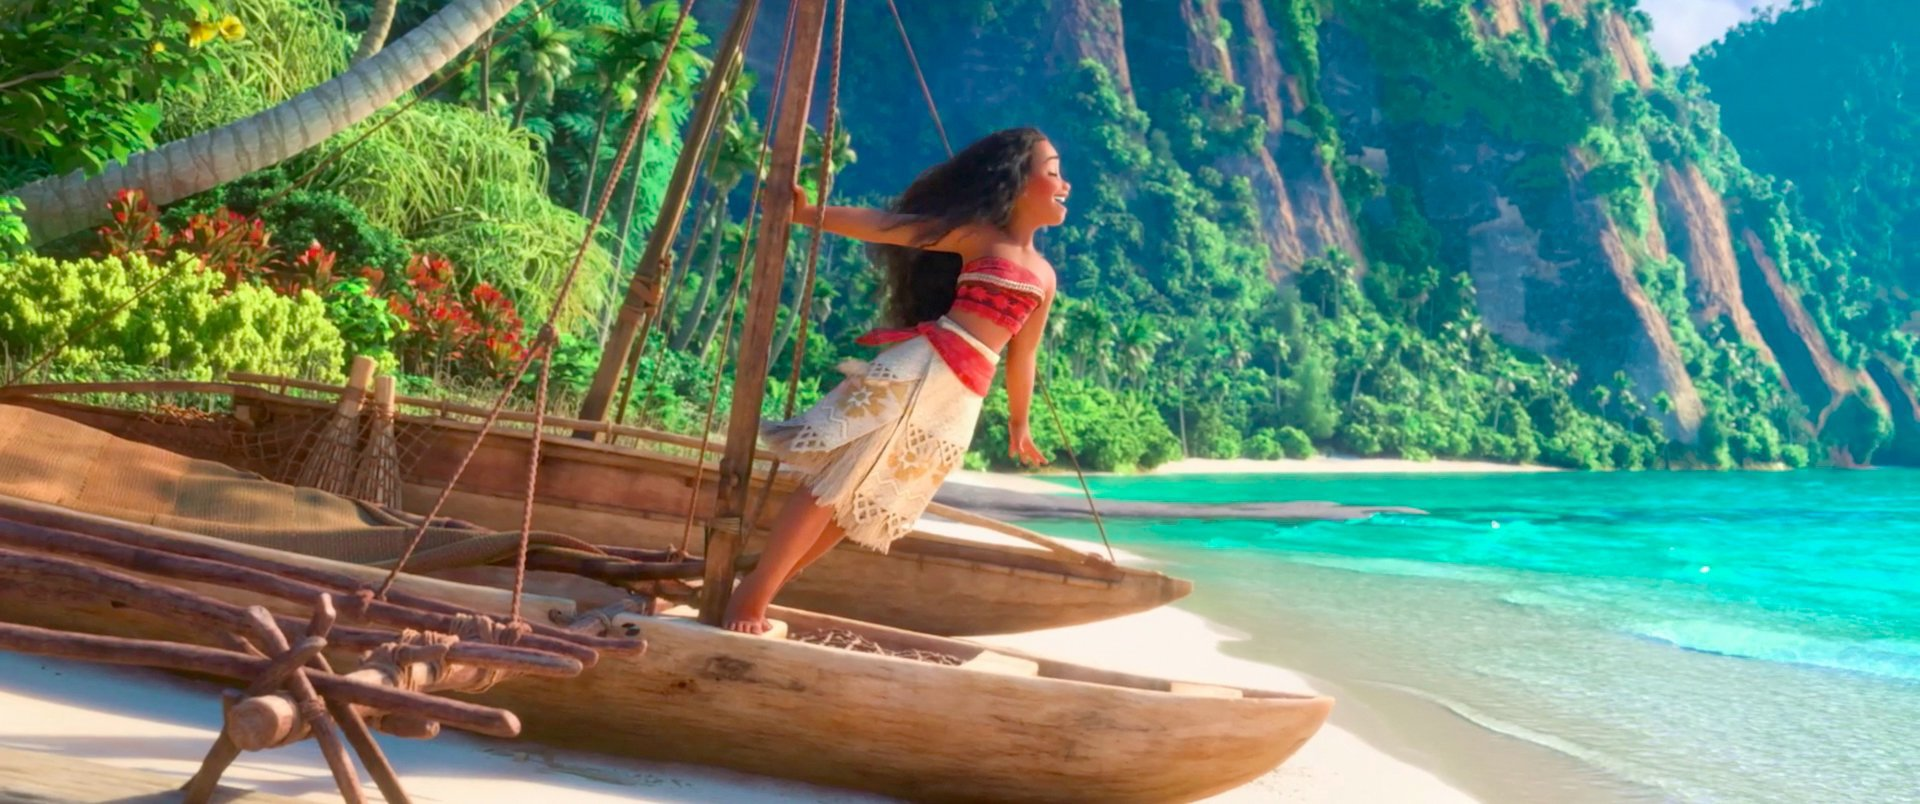 moana-singing-boats-shore